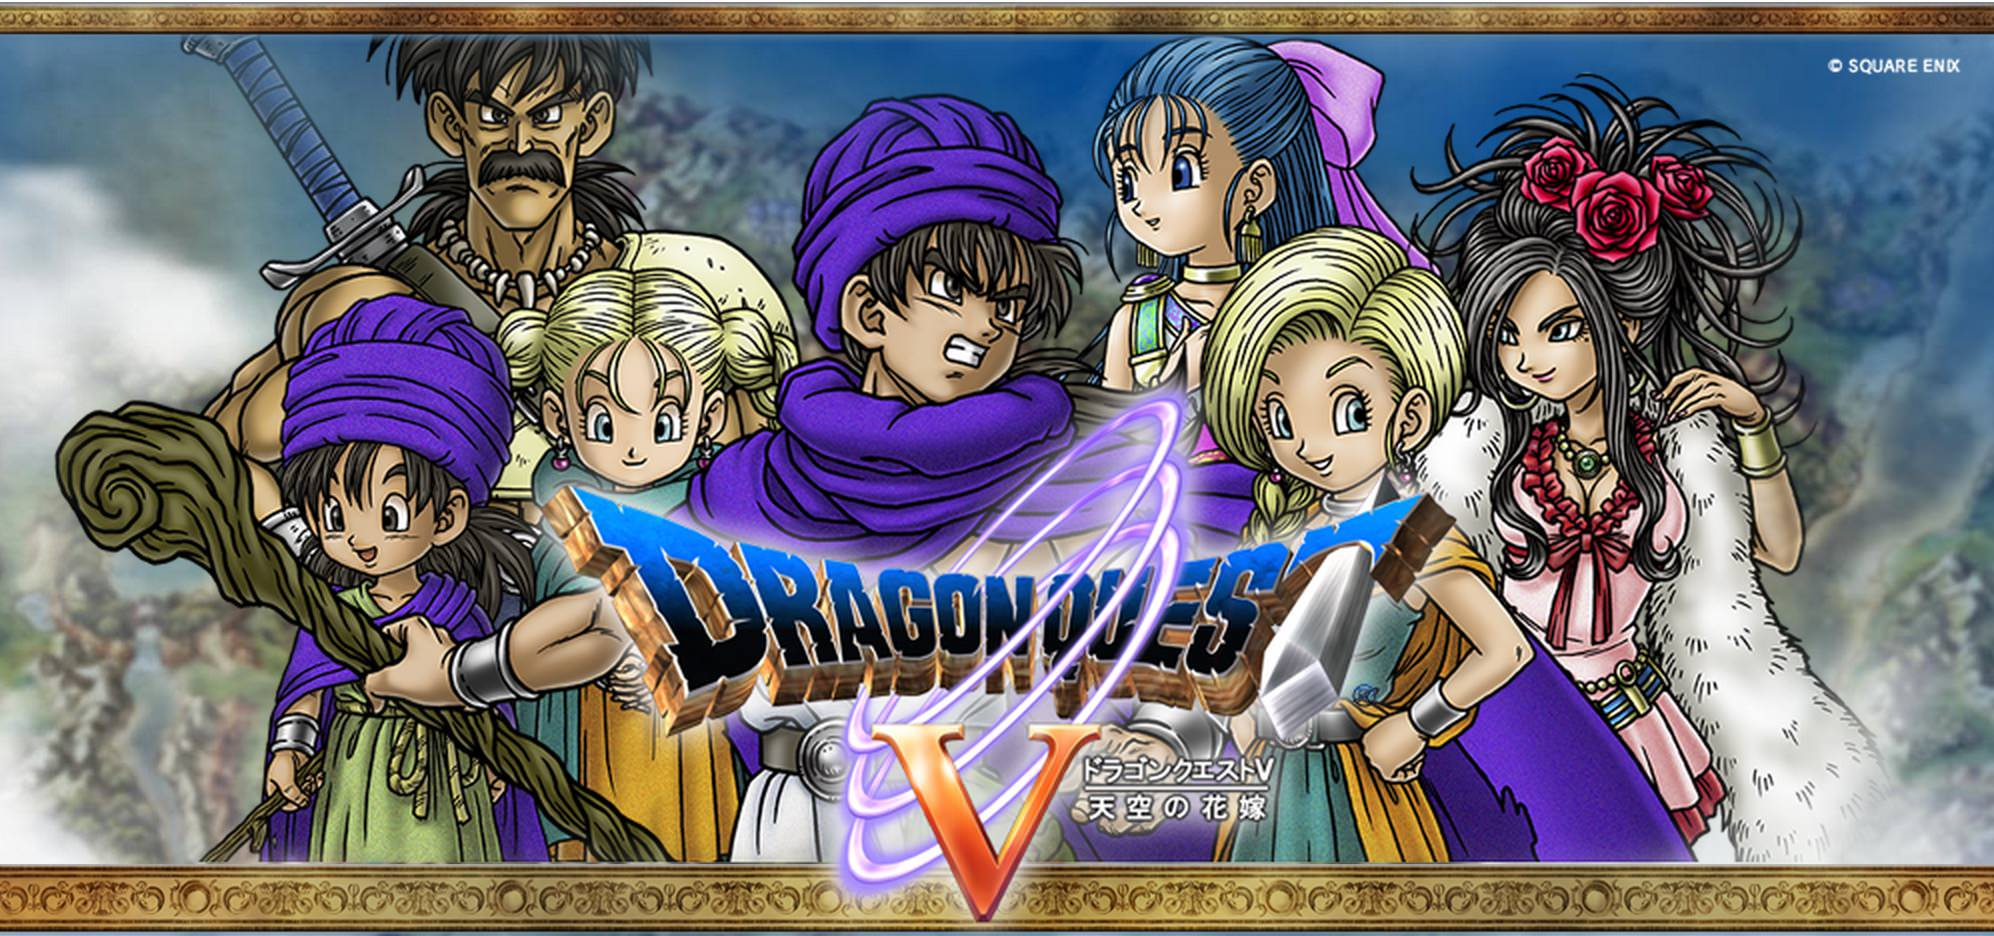 Dragonquest5 for smartphone